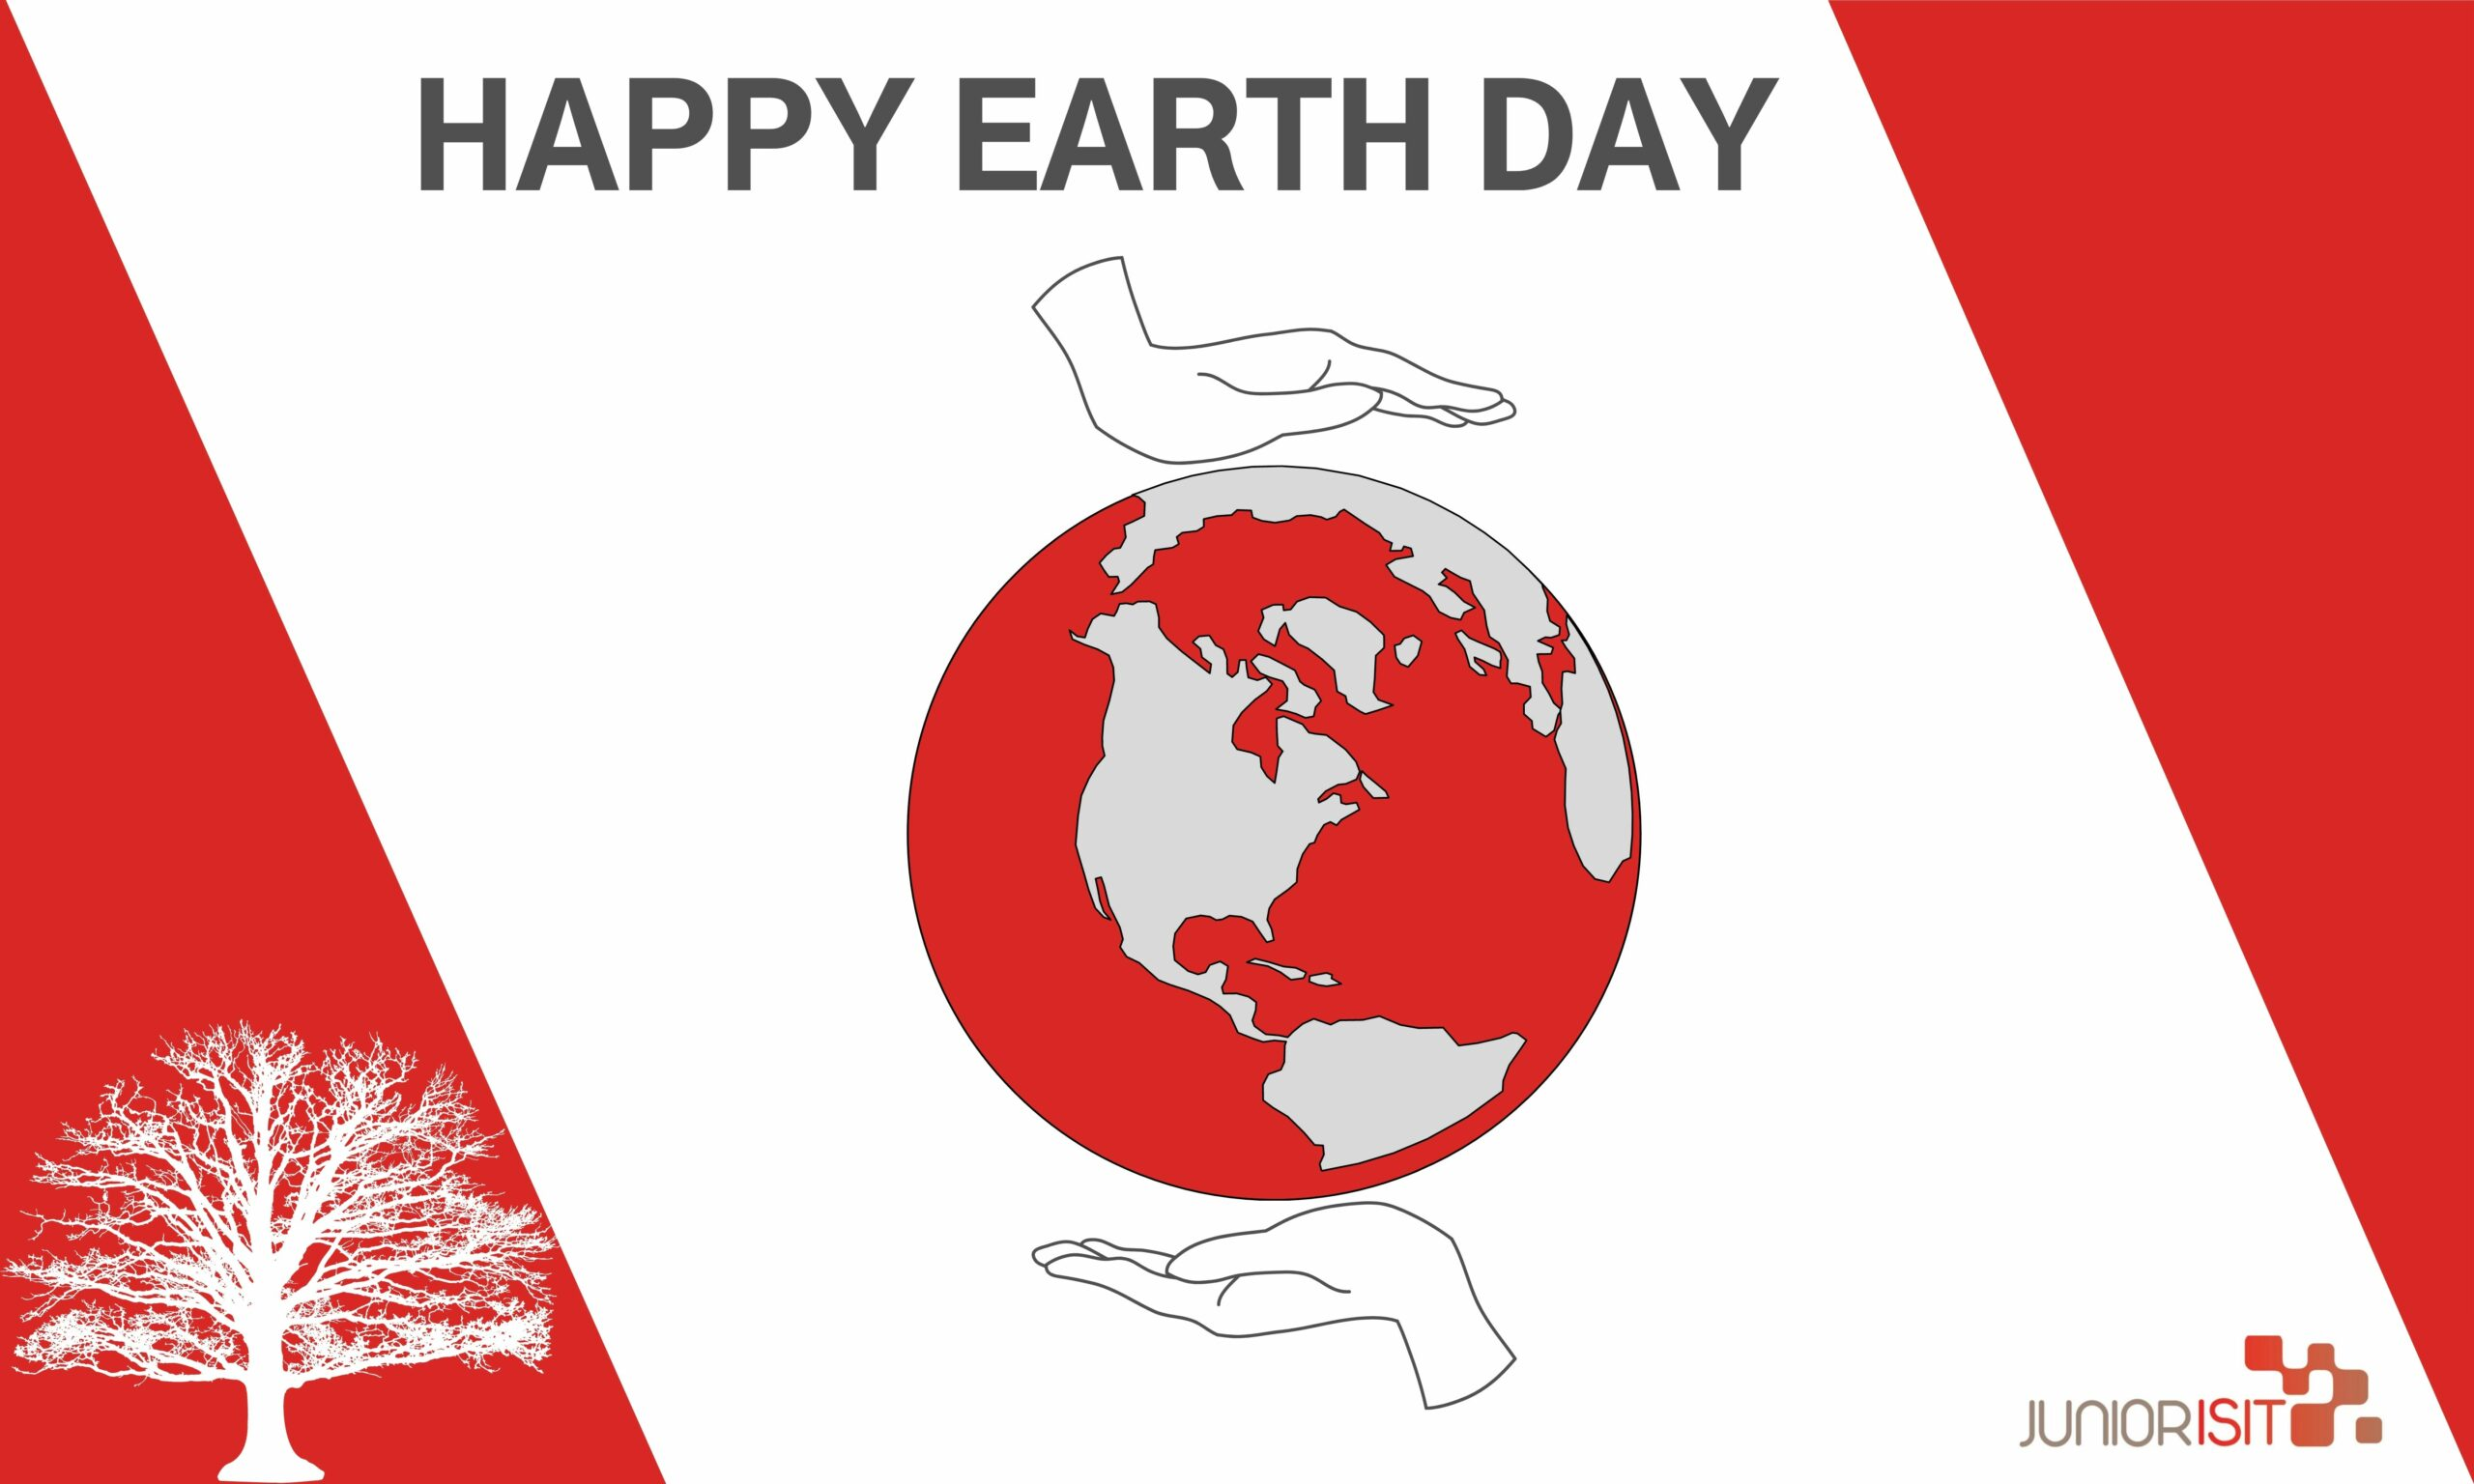 Earth Day is on April 22, and why not celebrate it every day?